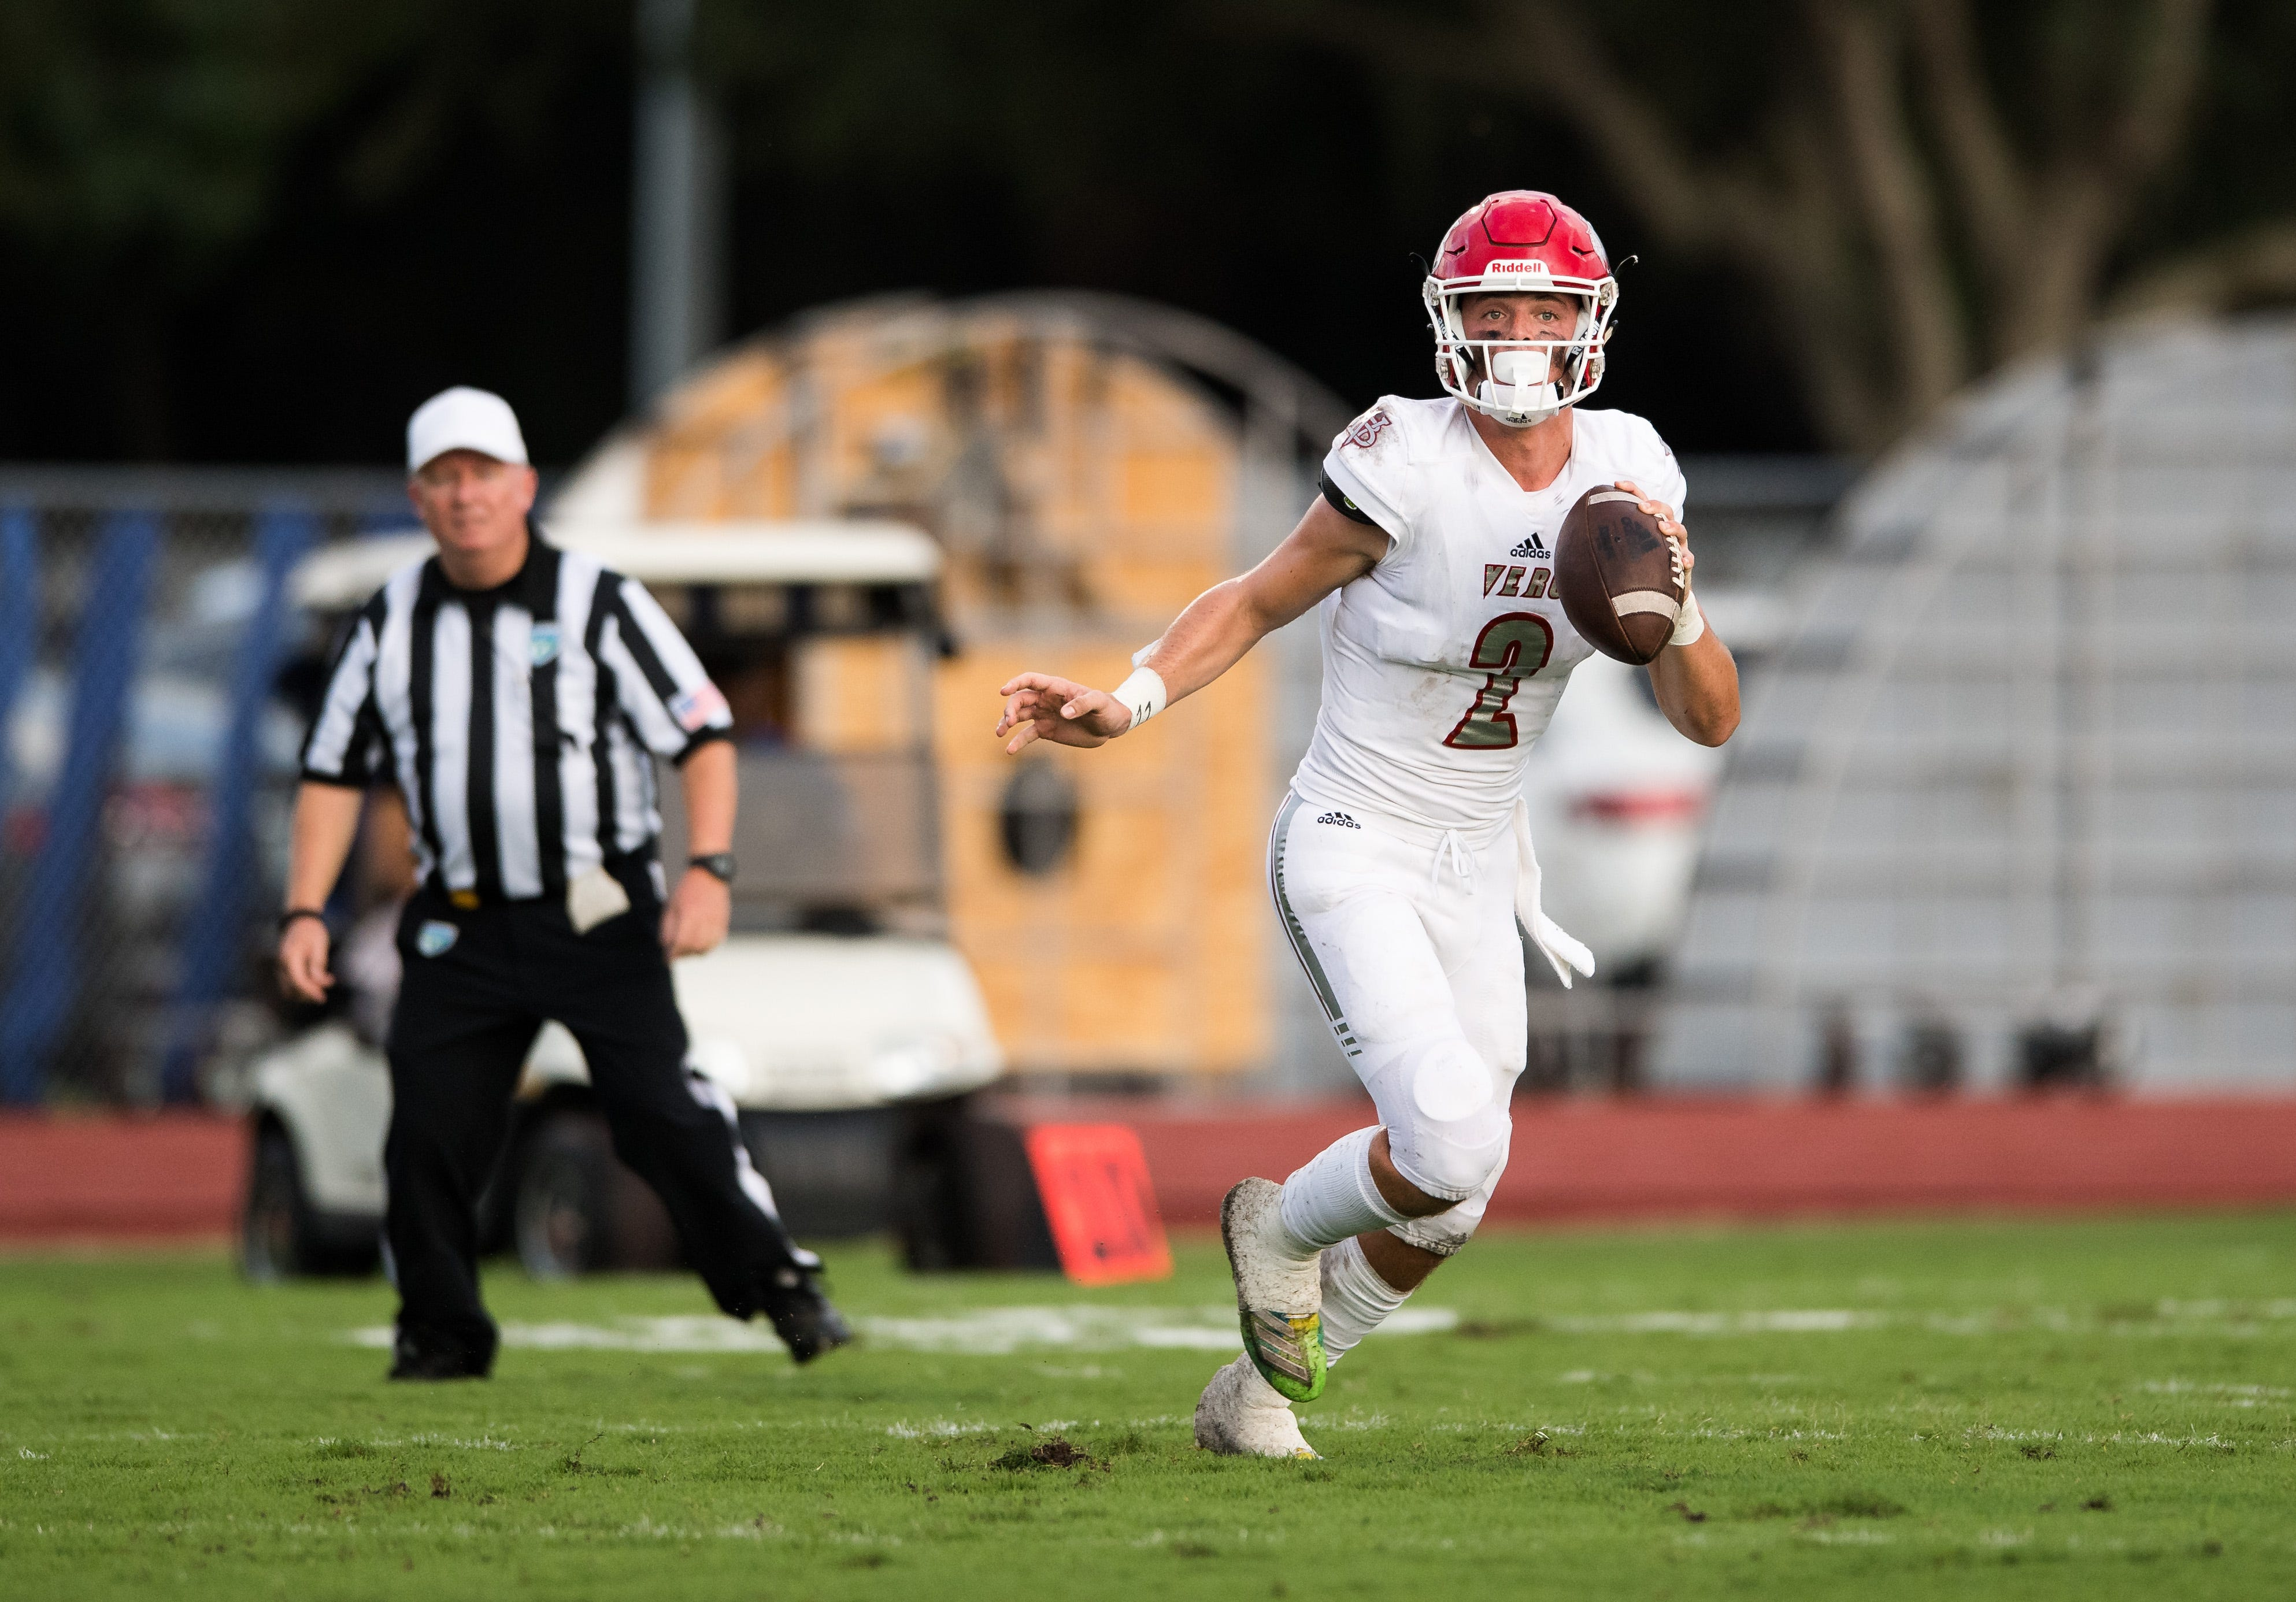 Vero Beach Qb Ryan Jankowski On What It S Like To Being The Coach Son